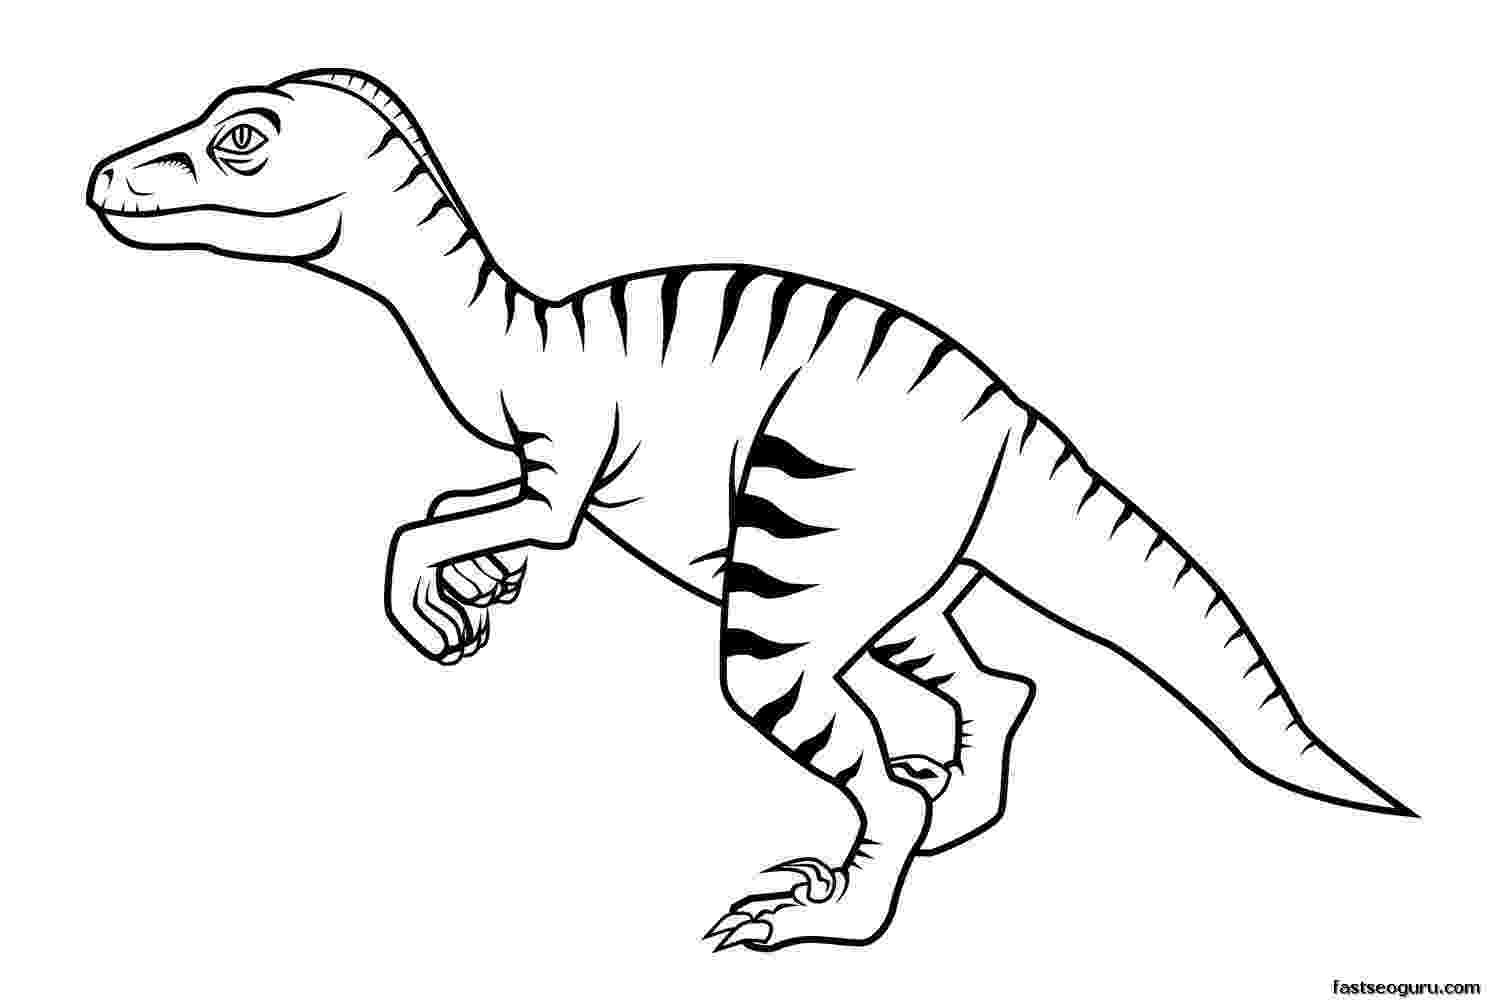 print dinosaur pictures free printable dinosaur coloring pages for kids dinosaur pictures print 1 2